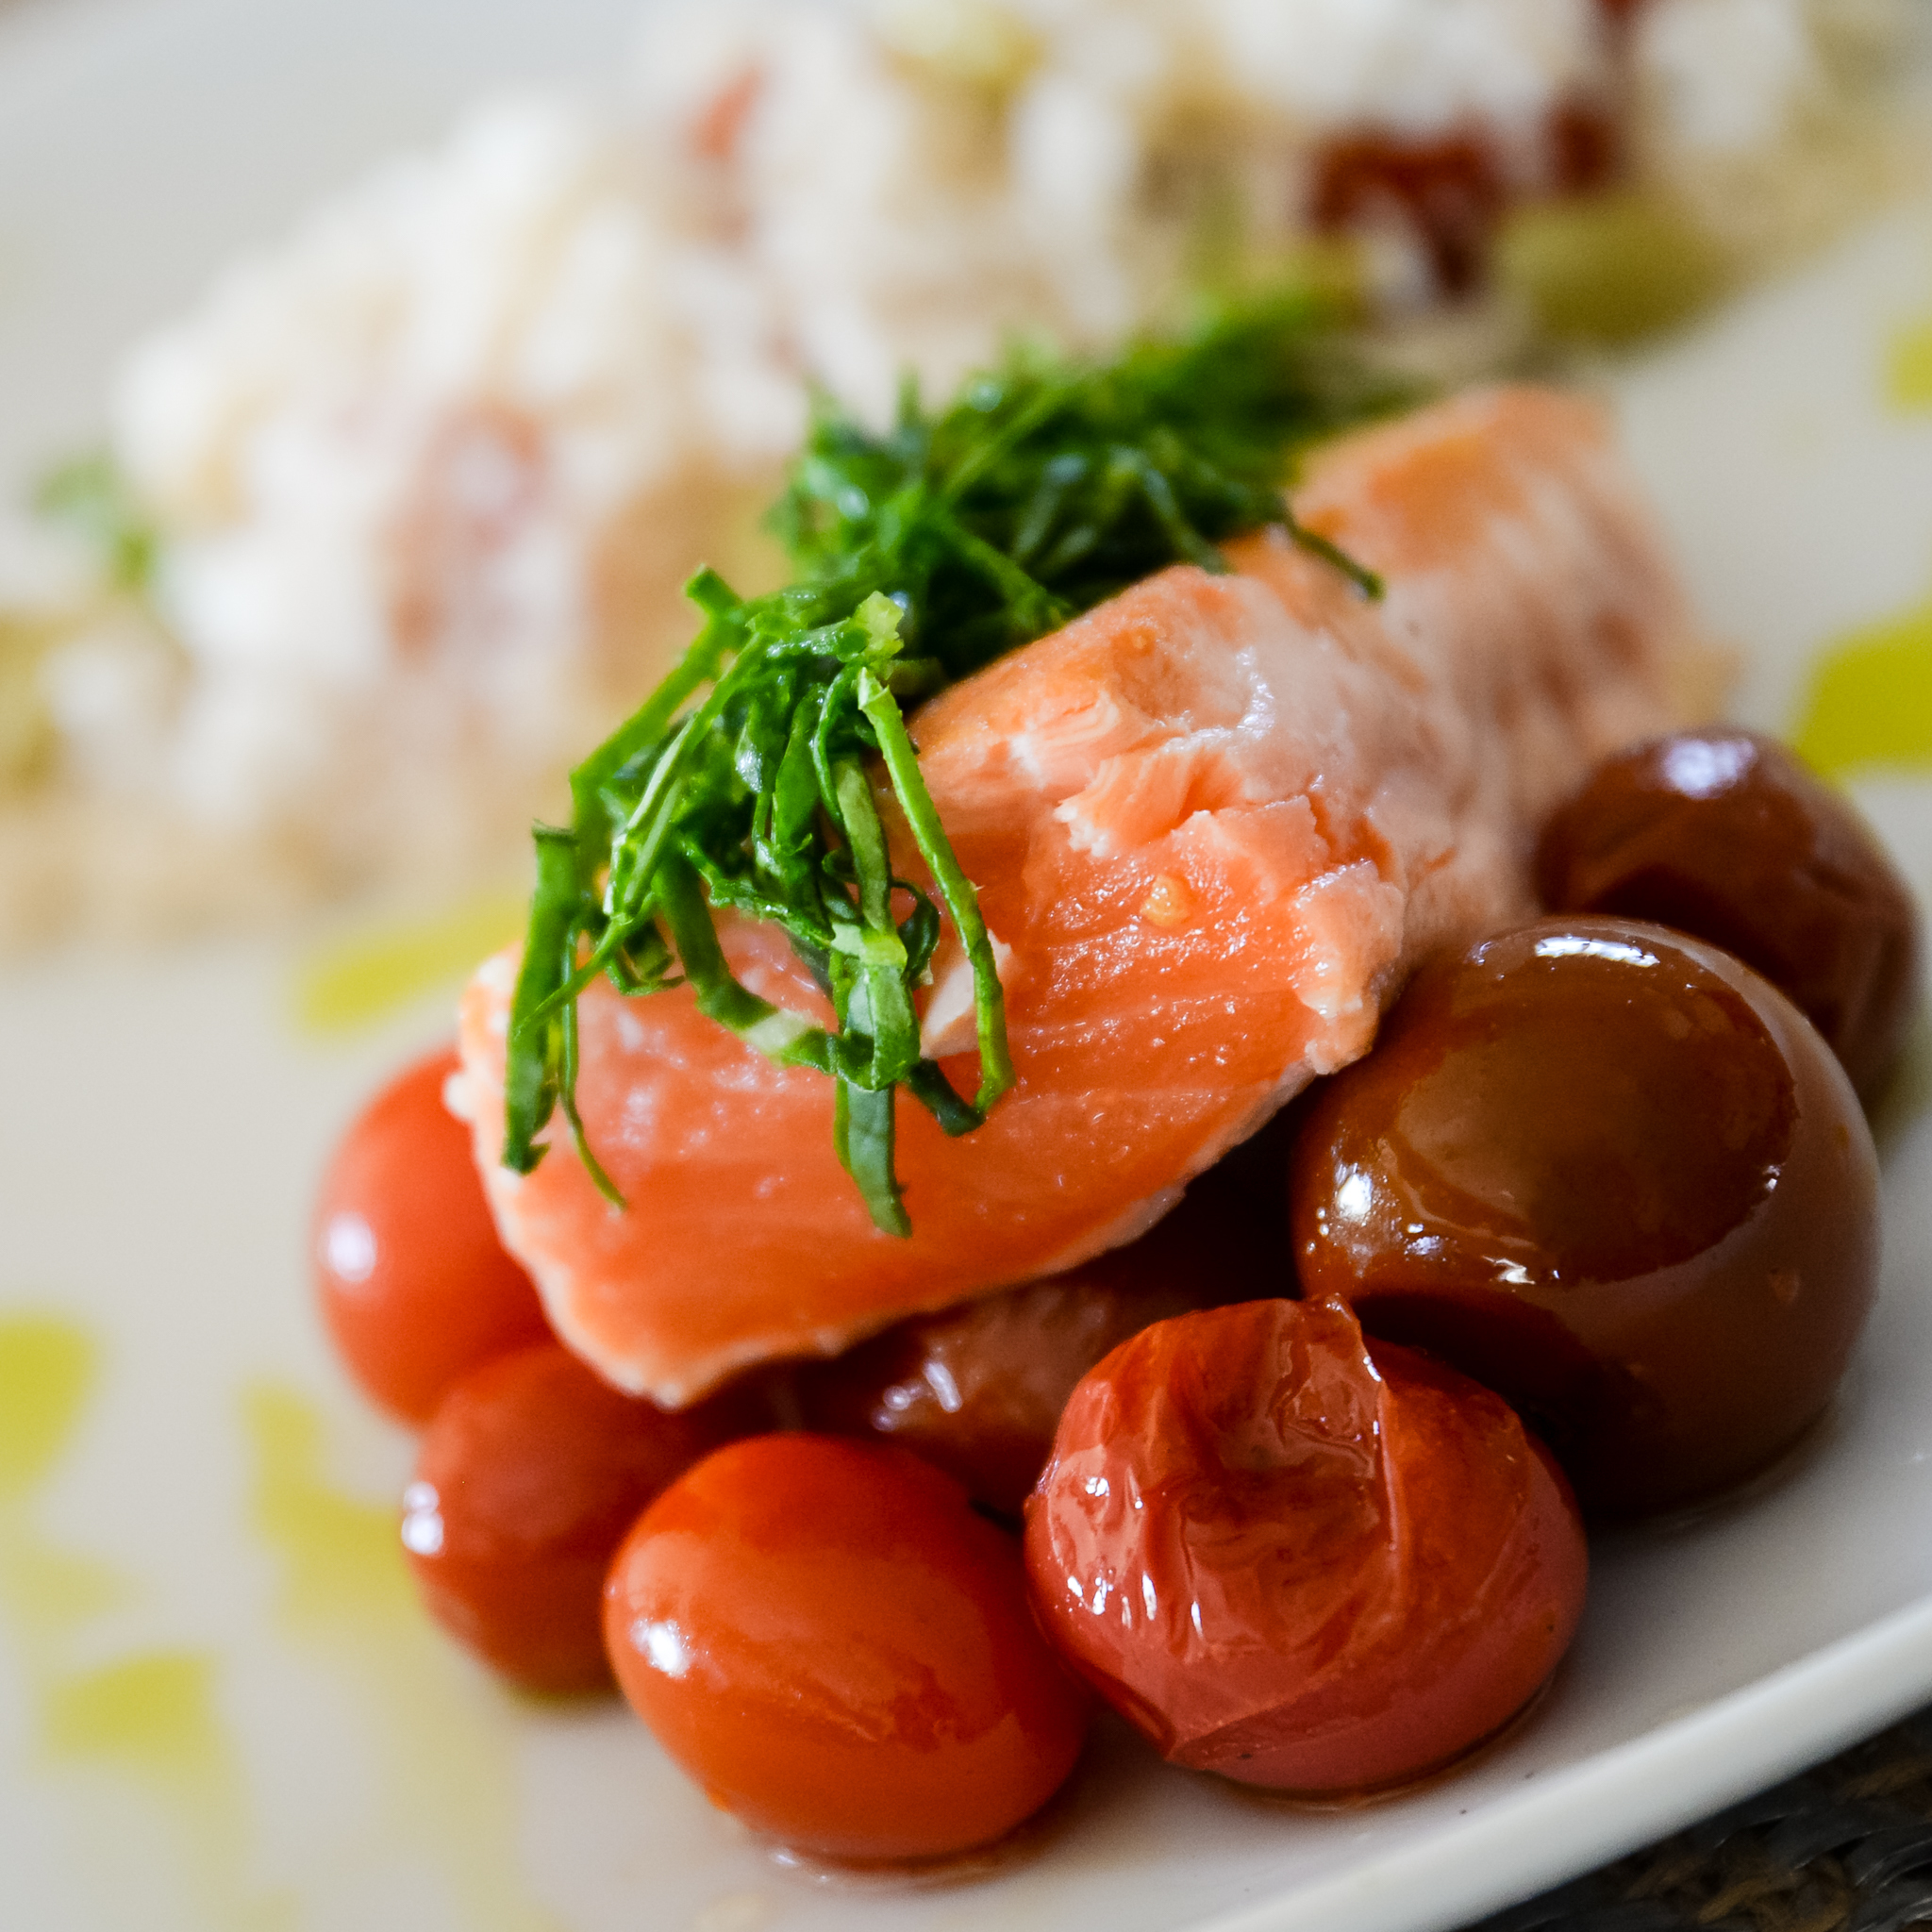 Honest Plate's grilled salmon with blistered tomatoes.